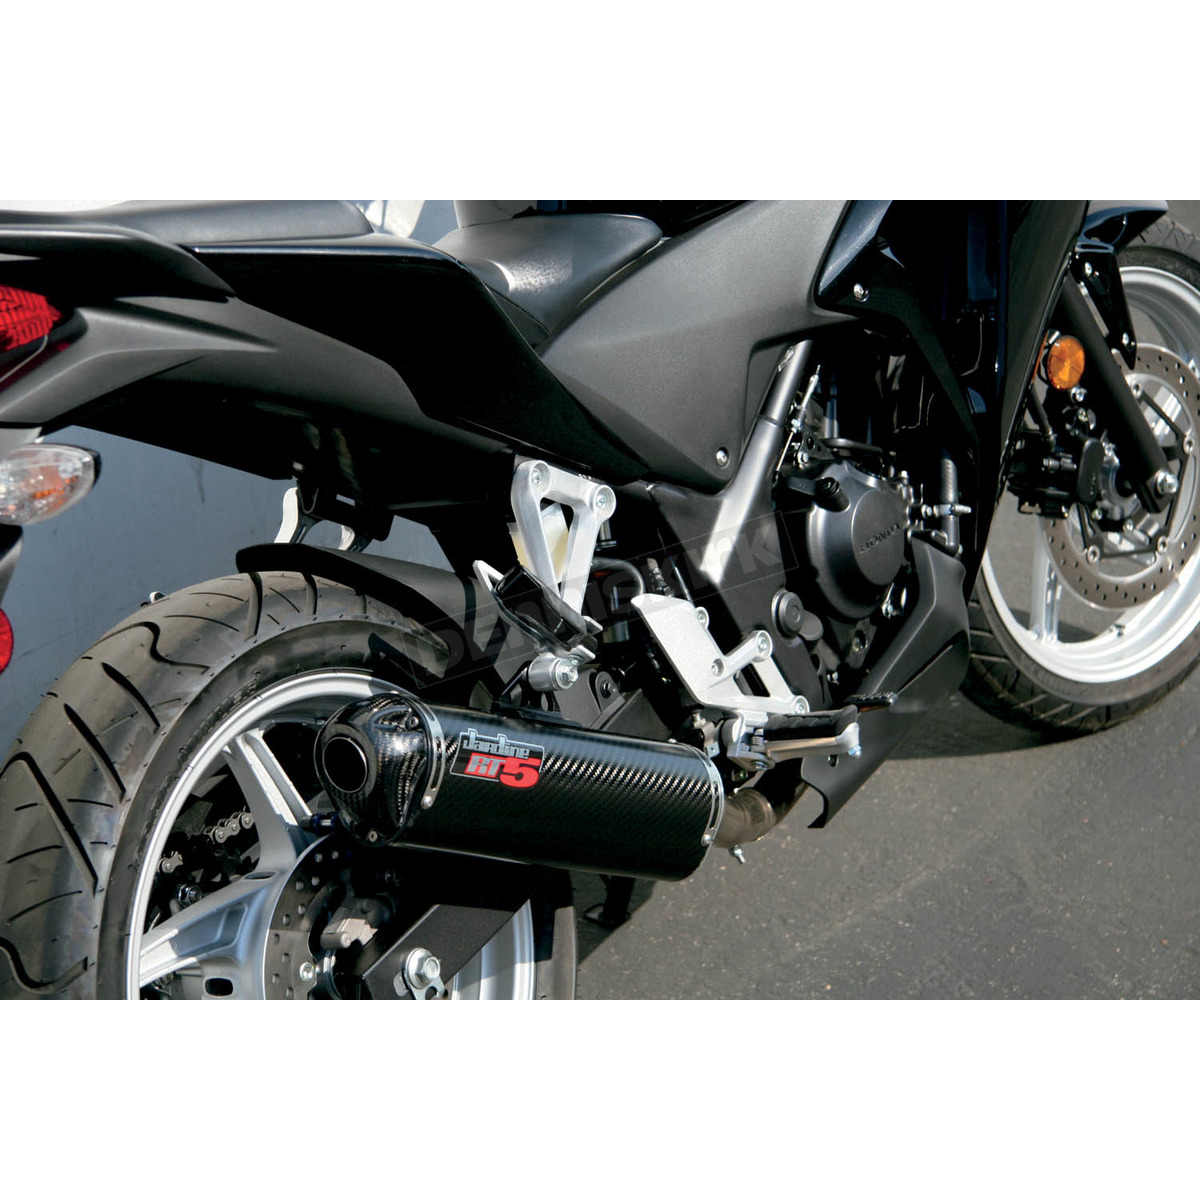 Jardine rt 5 exhaust system 19 1326 323 02 sport bike for Jardine exhaust